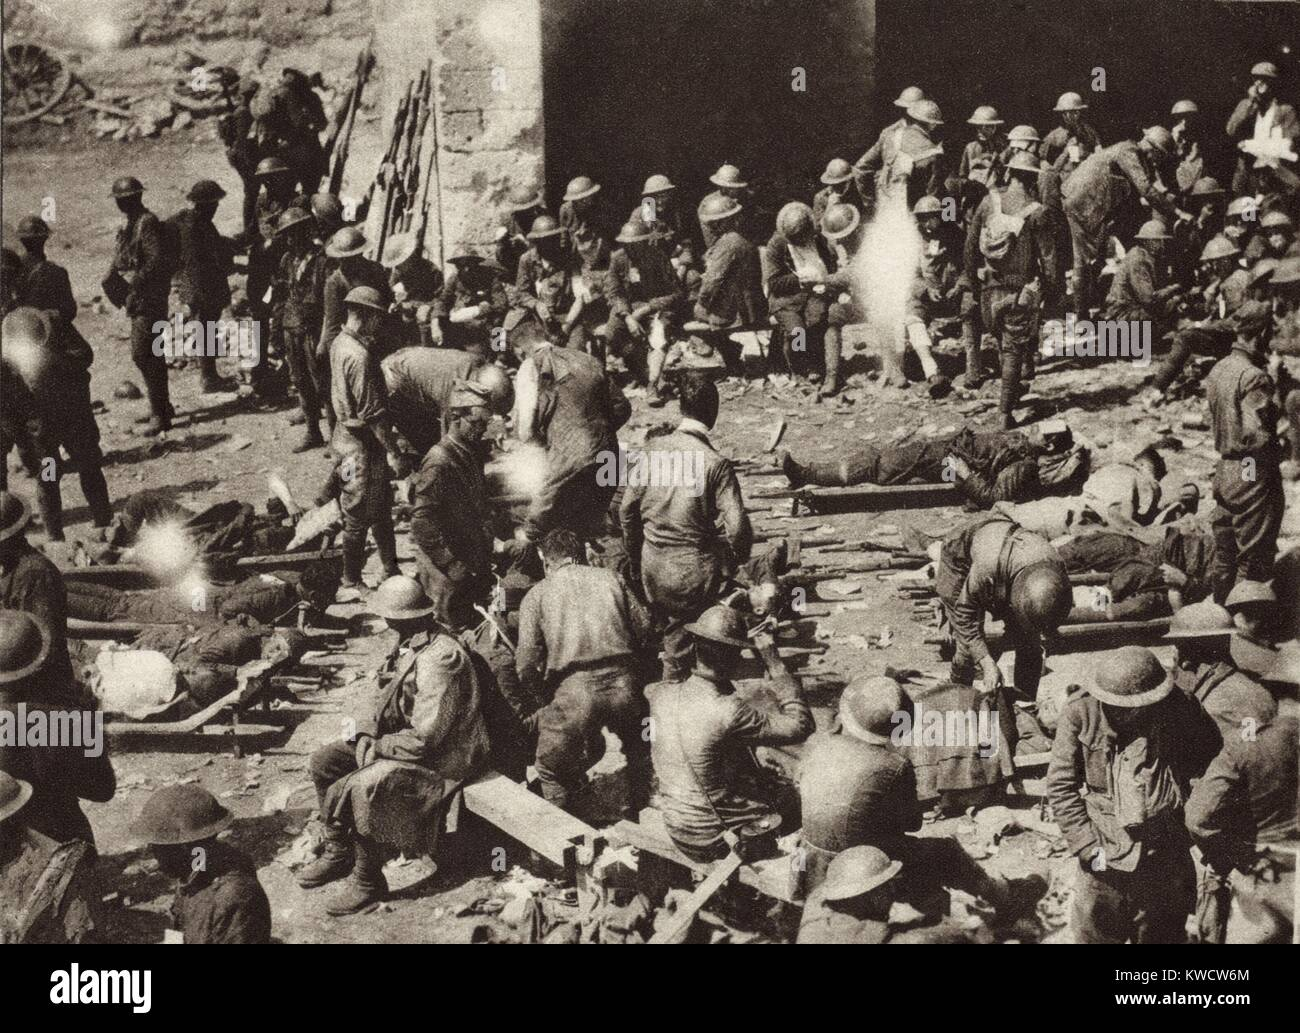 World War 1: American Red Cross First-Aid station in French town on the Western Front. Badly wounded soldiers have - Stock Image